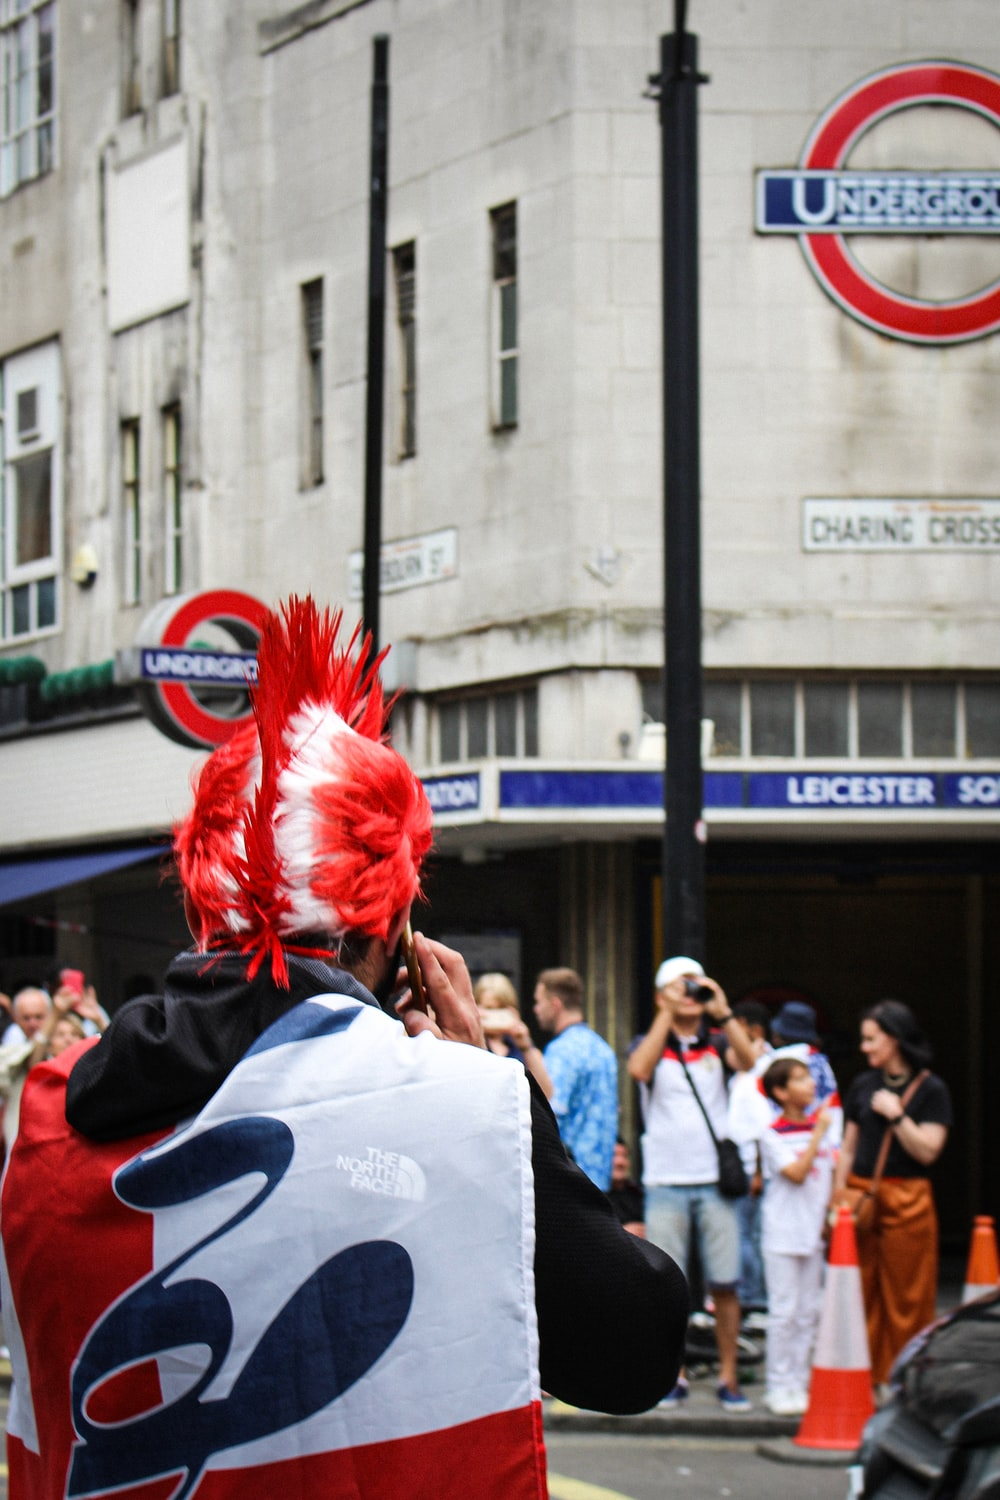 people in white shirt and red wig standing on street during daytime